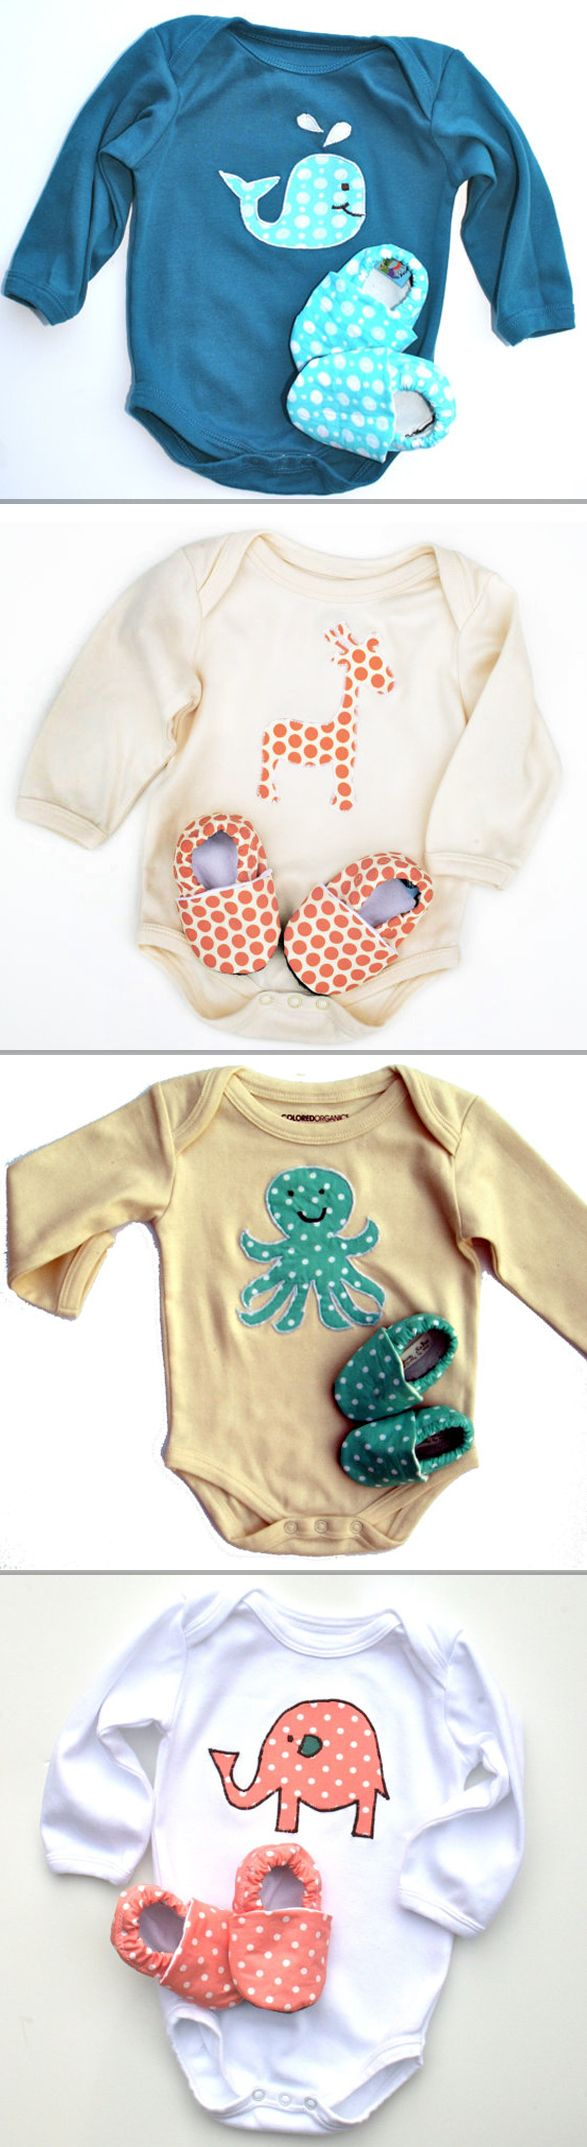 This Etsy shop has the cutest baby clothes! #babyclothes. For future baby gifts.